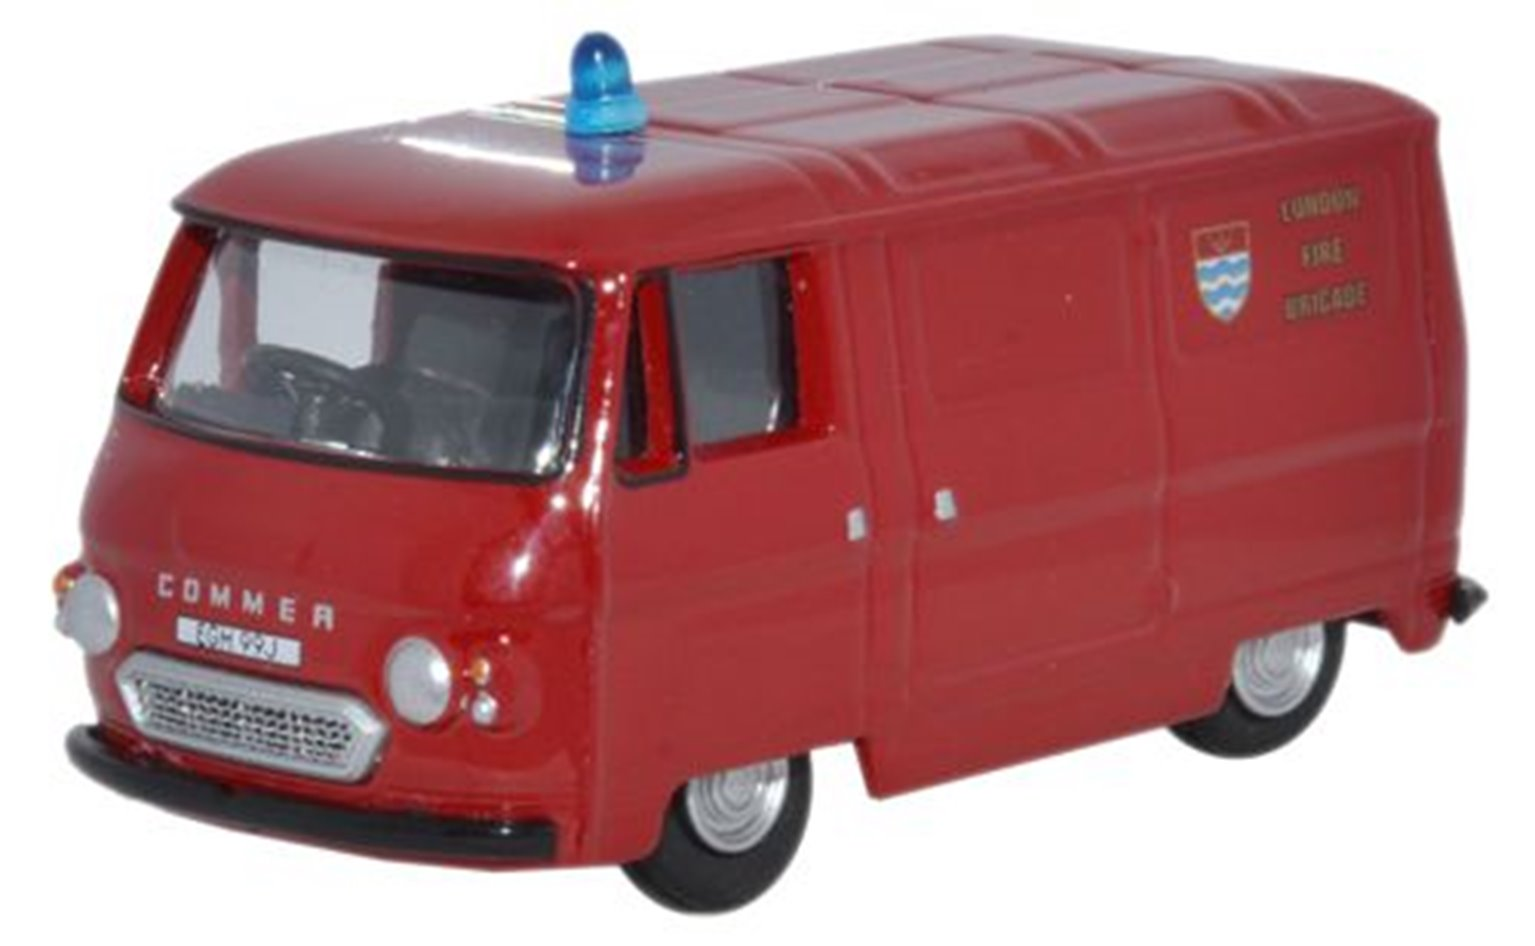 Commer PB Van London Fire Brigade